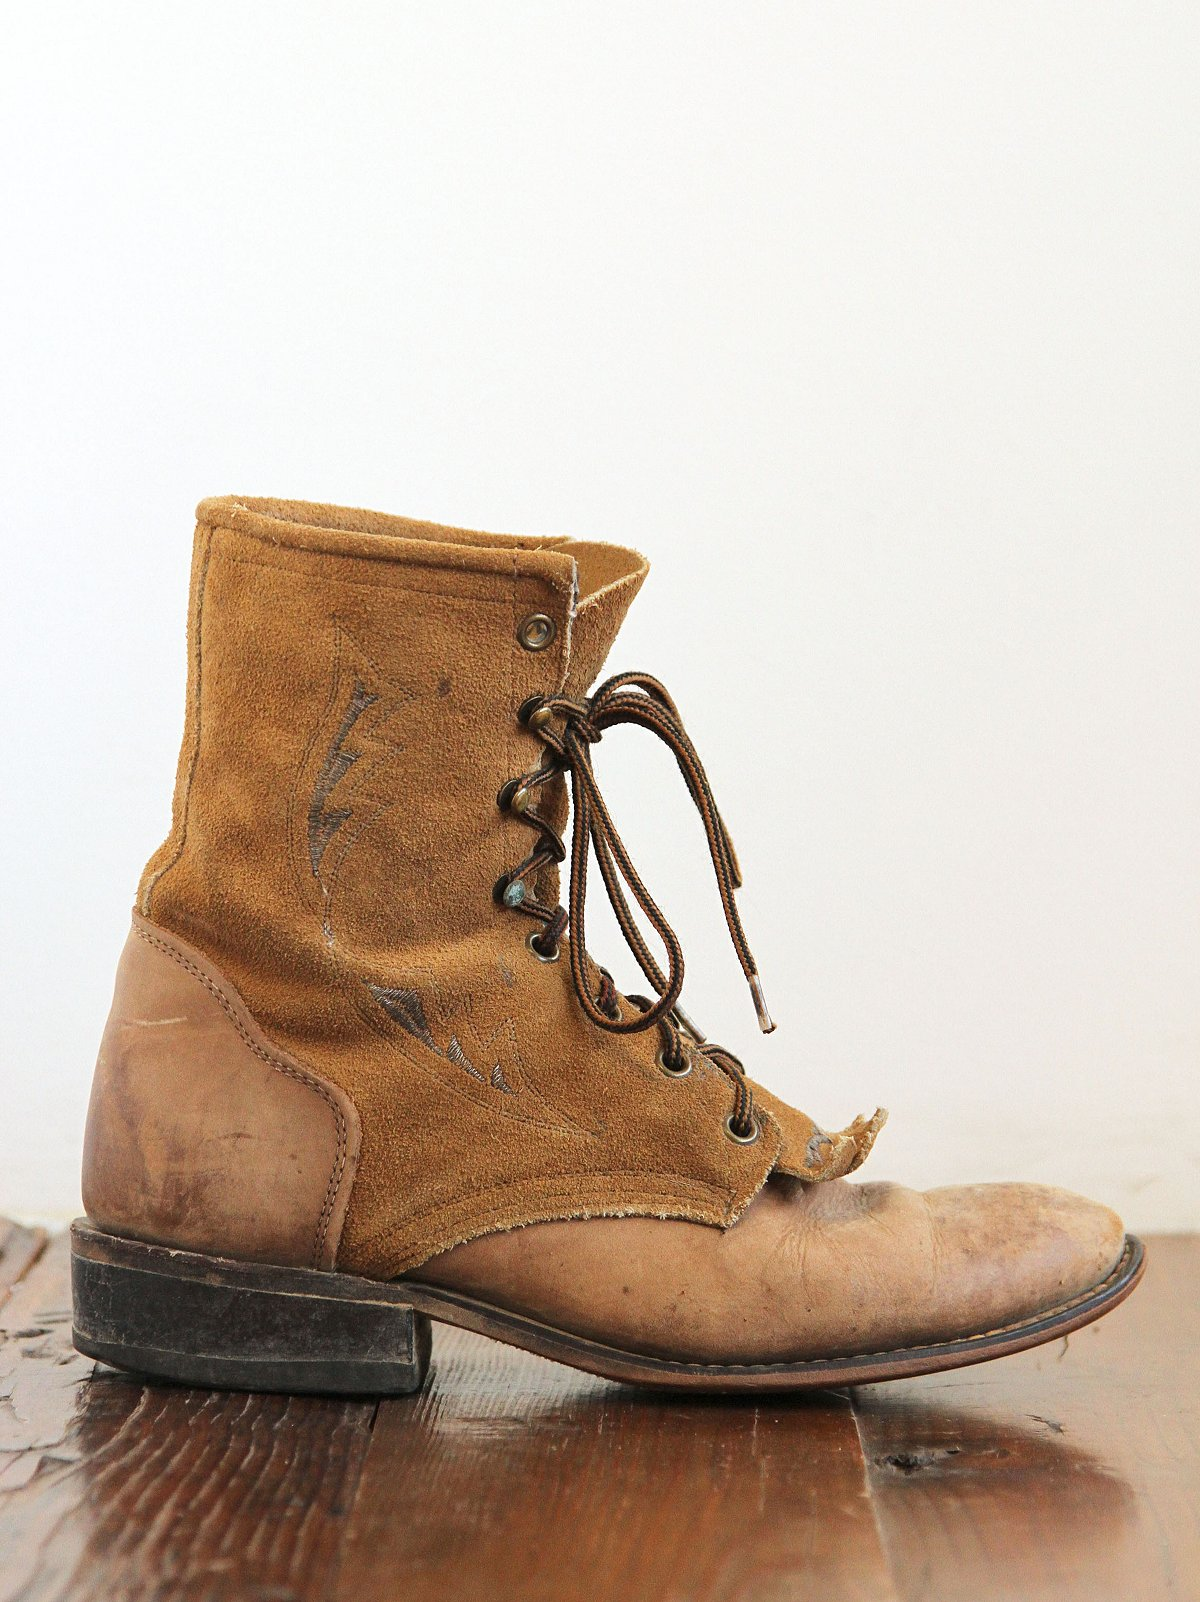 Vintage Distressed Leather Ankle Boots